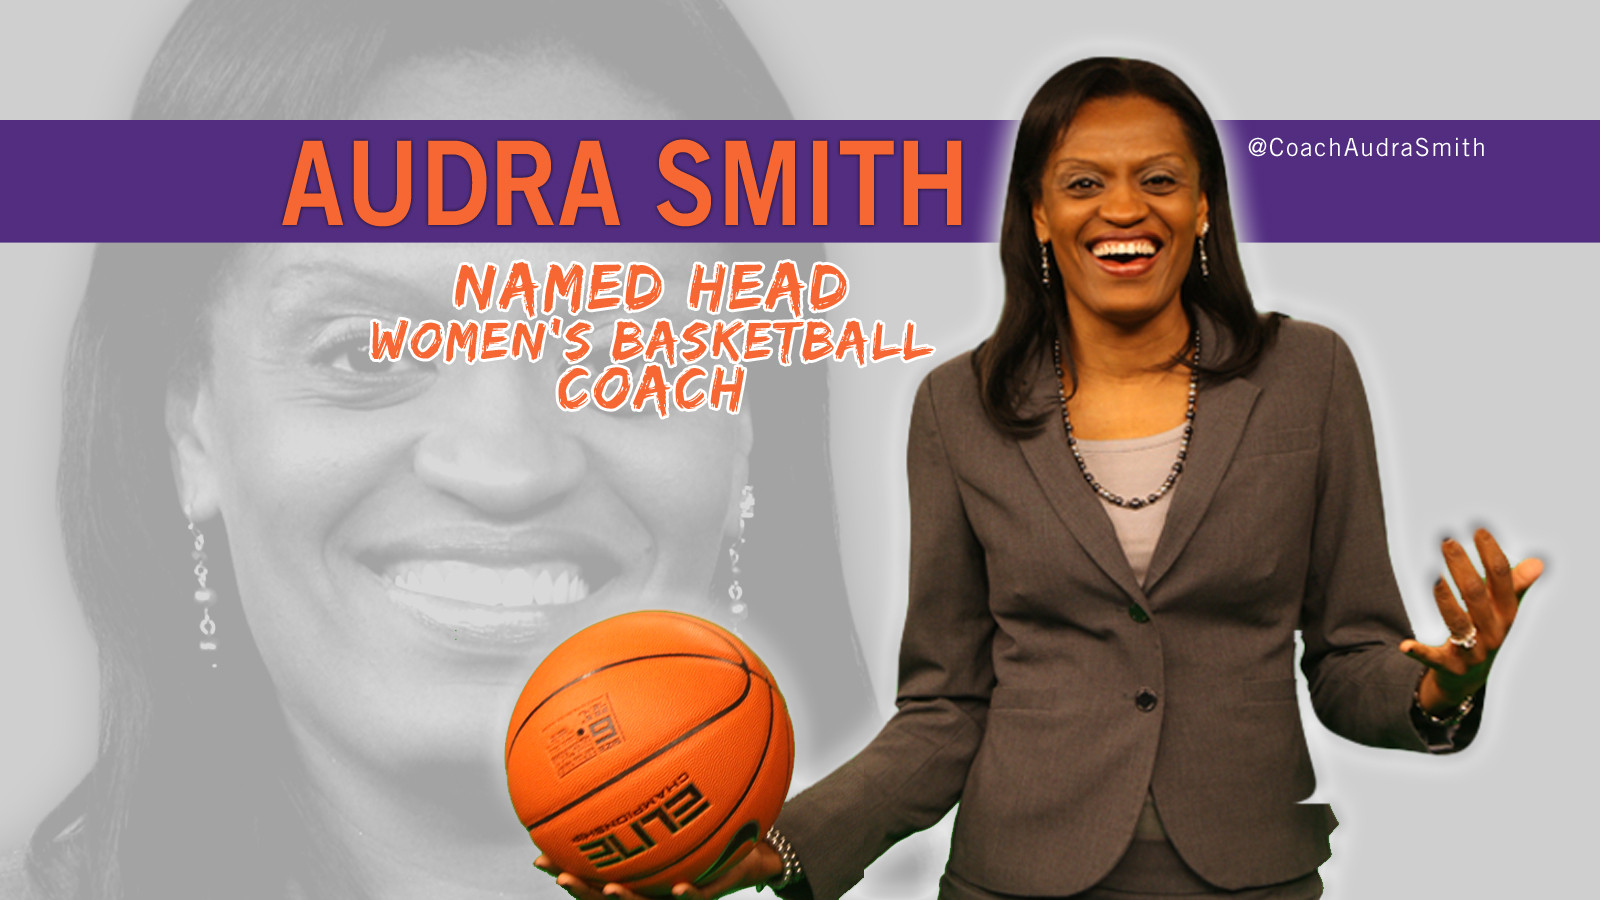 Audra Smith Named Head Women's Basketball Coach